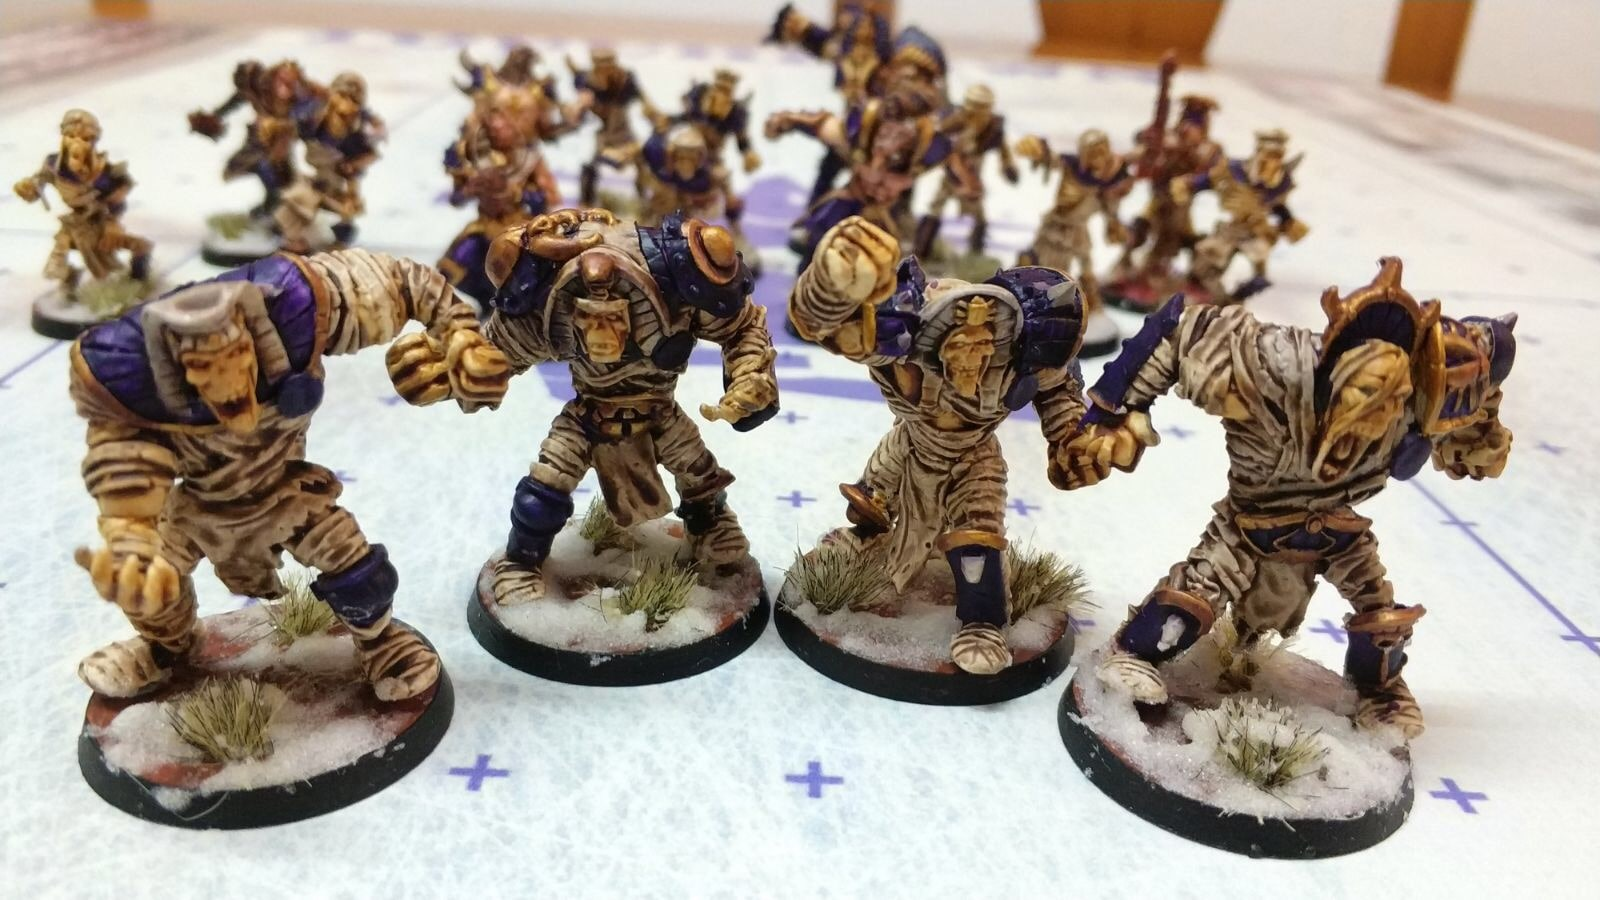 Equipo de khemry de Willy miniatures (2)